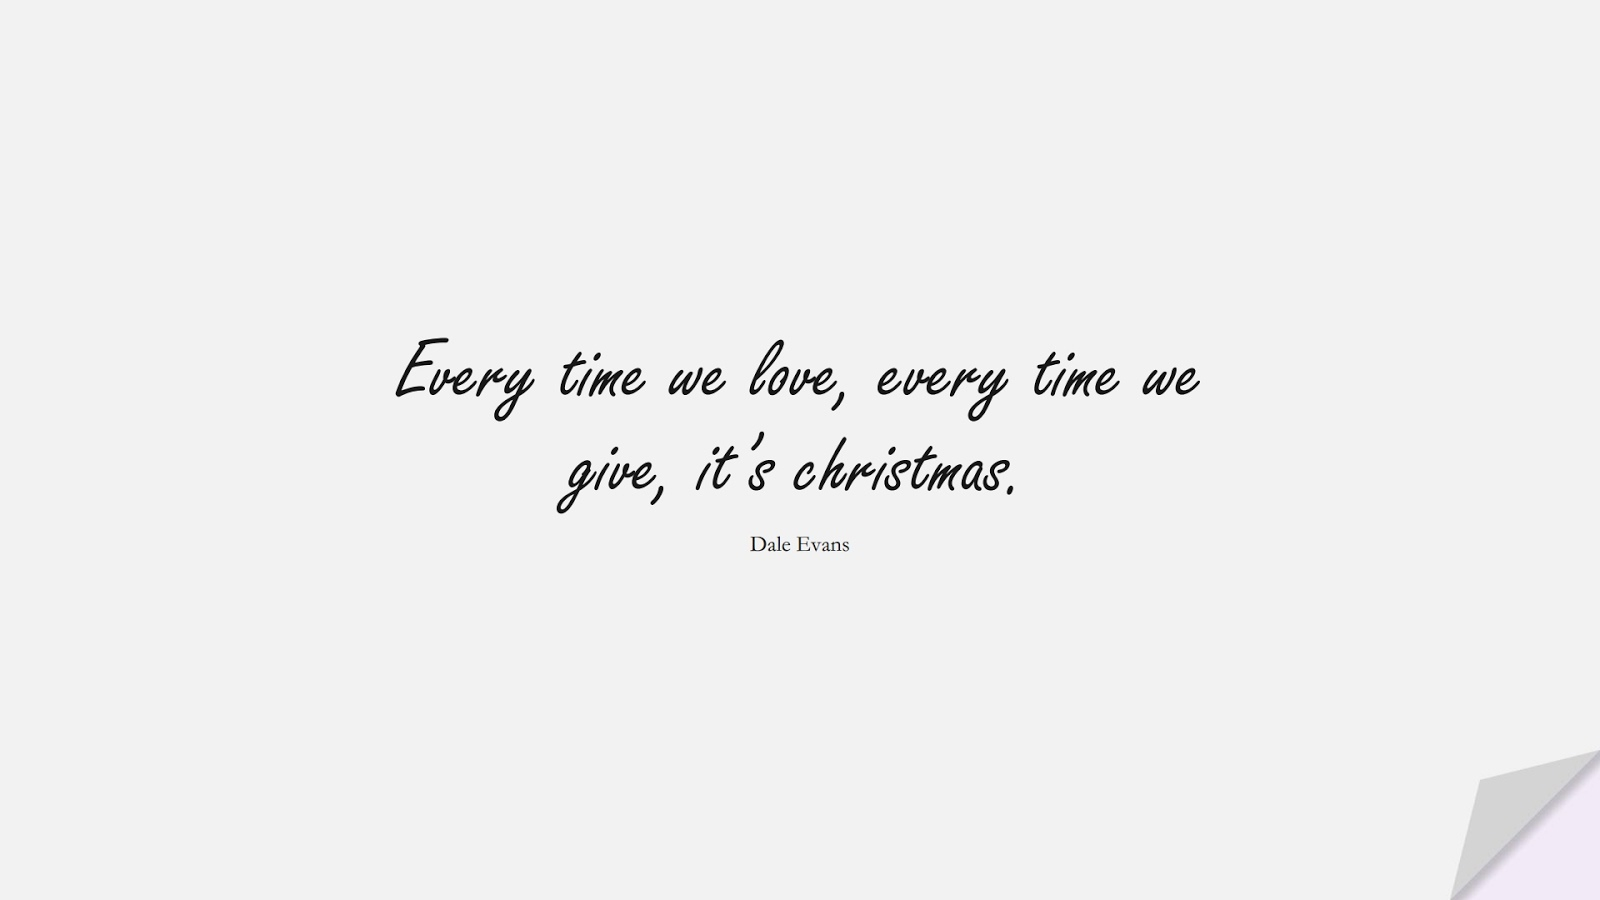 Every time we love, every time we give, it's christmas. (Dale Evans);  #LoveQuotes